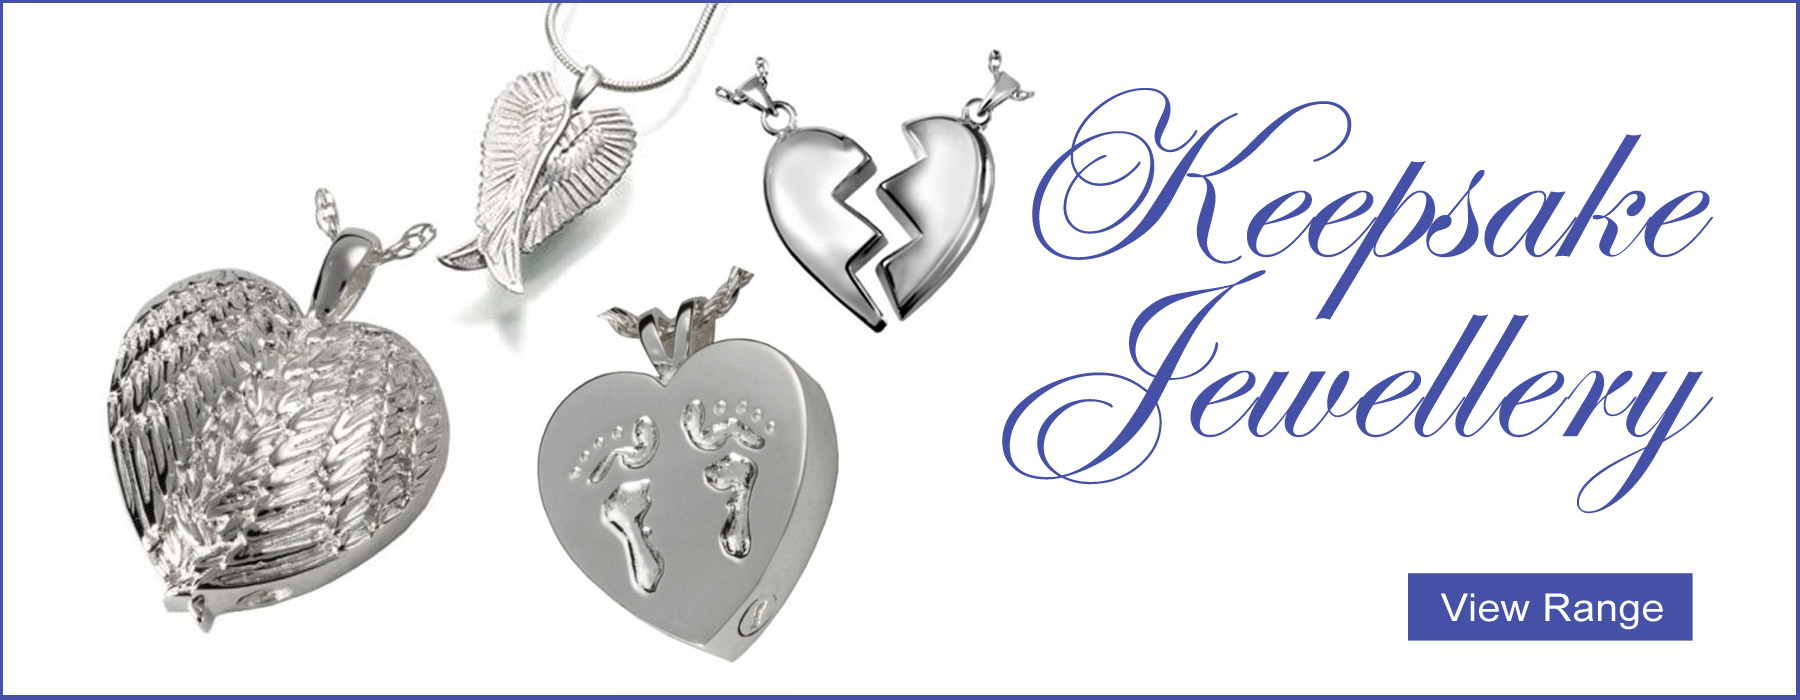 Keepsake Jewellery